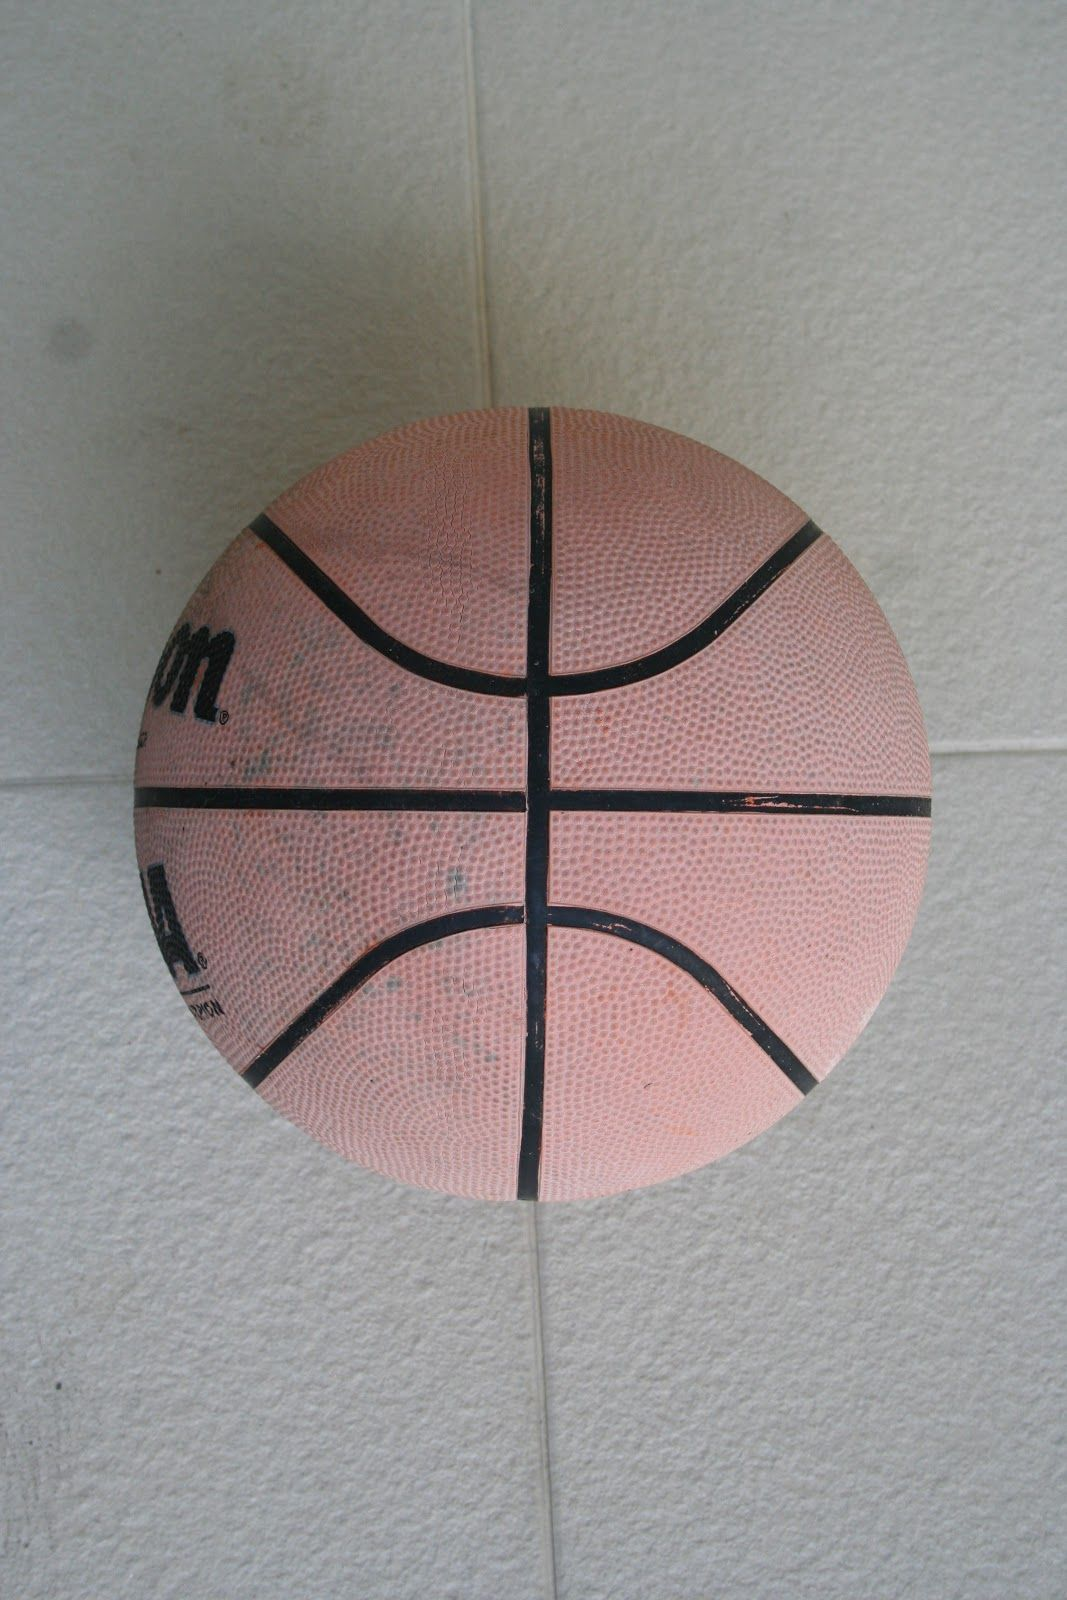 This Basketball Has A Shape Of A Coordinate Plane With 1